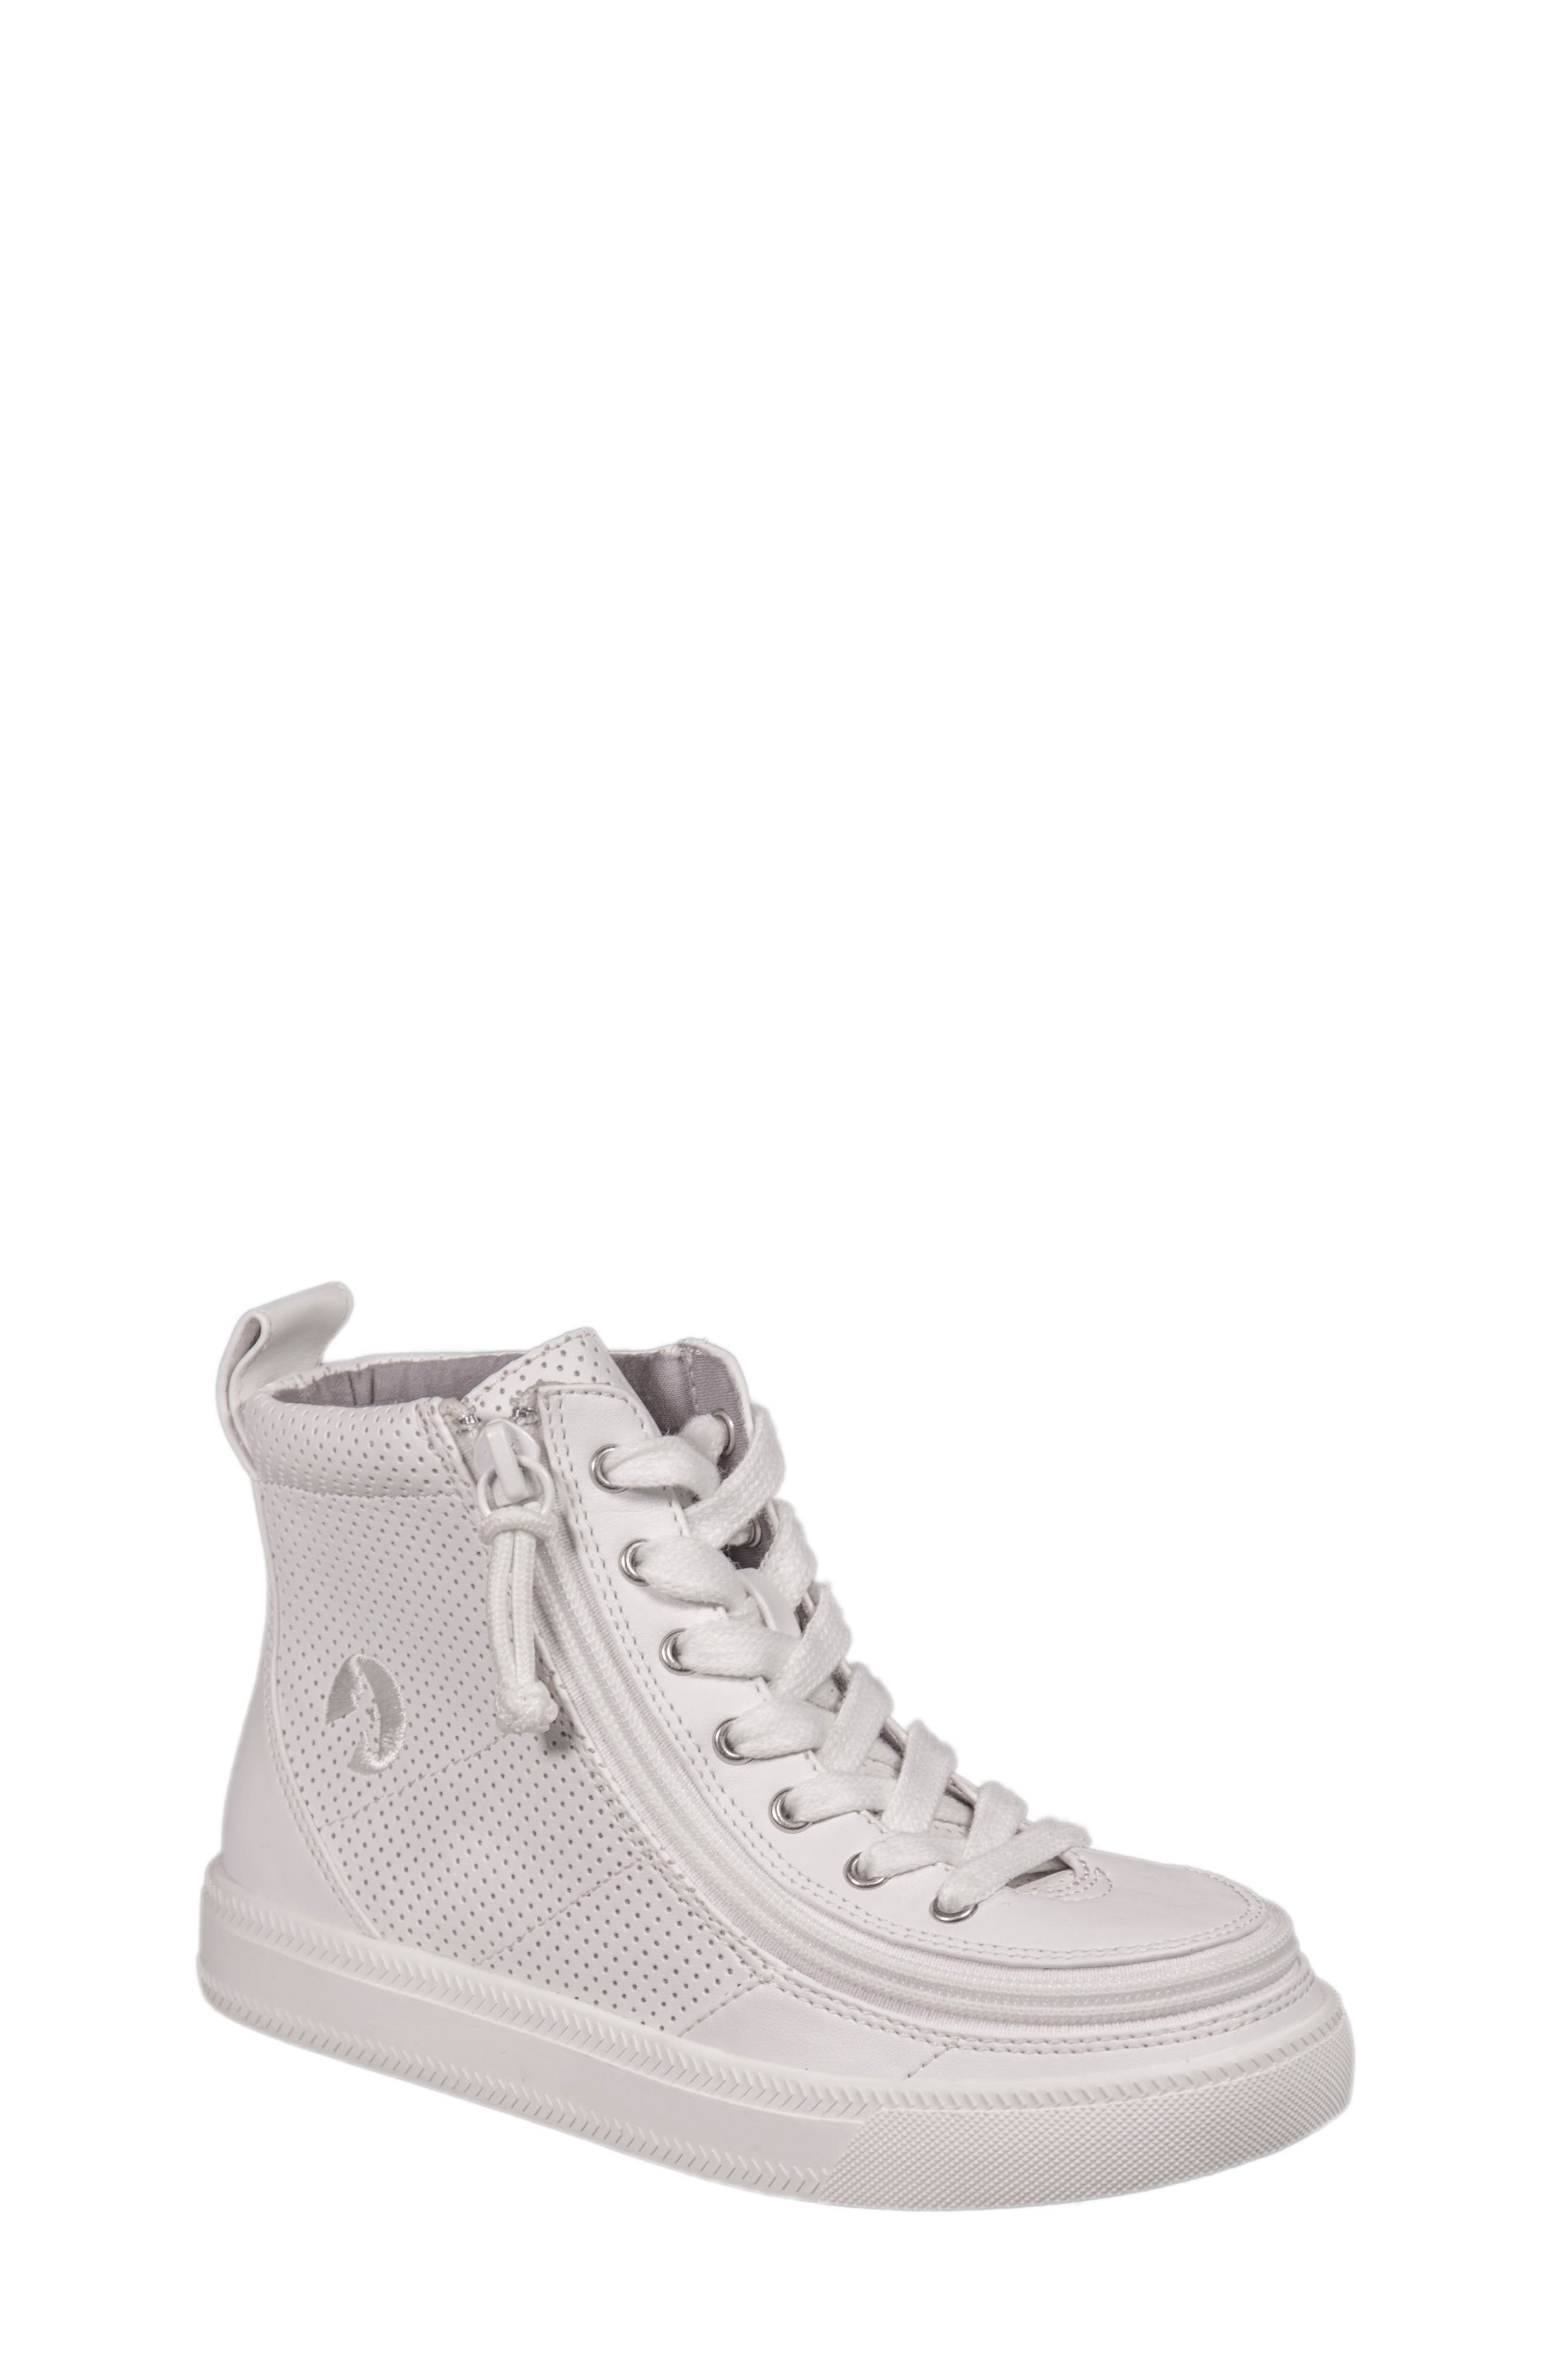 Zip Around Perforated High Top Sneaker,                             Main thumbnail 1, color,                             White Perforated